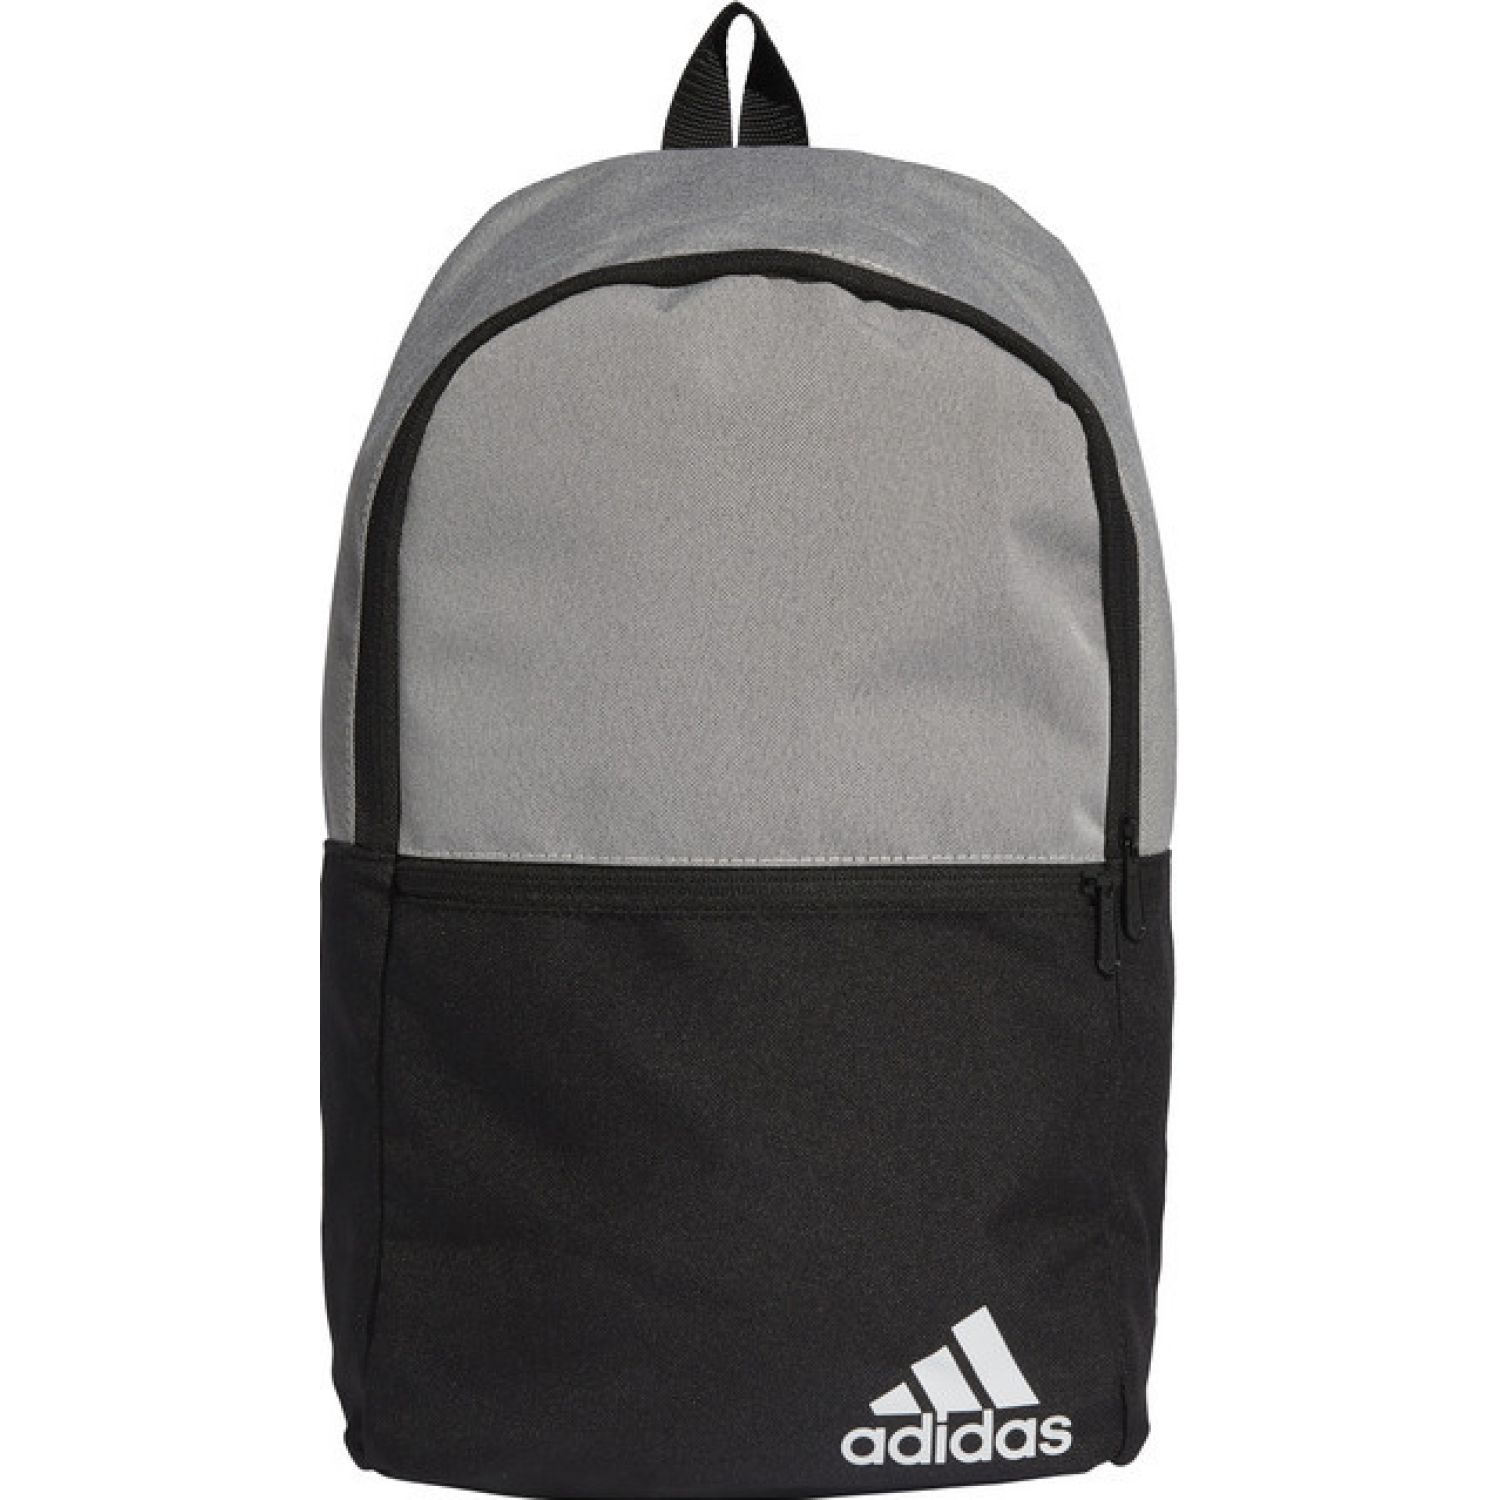 Adidas Daily Bp Ii NEGRO / GRIS Mochilas Multipropósitos